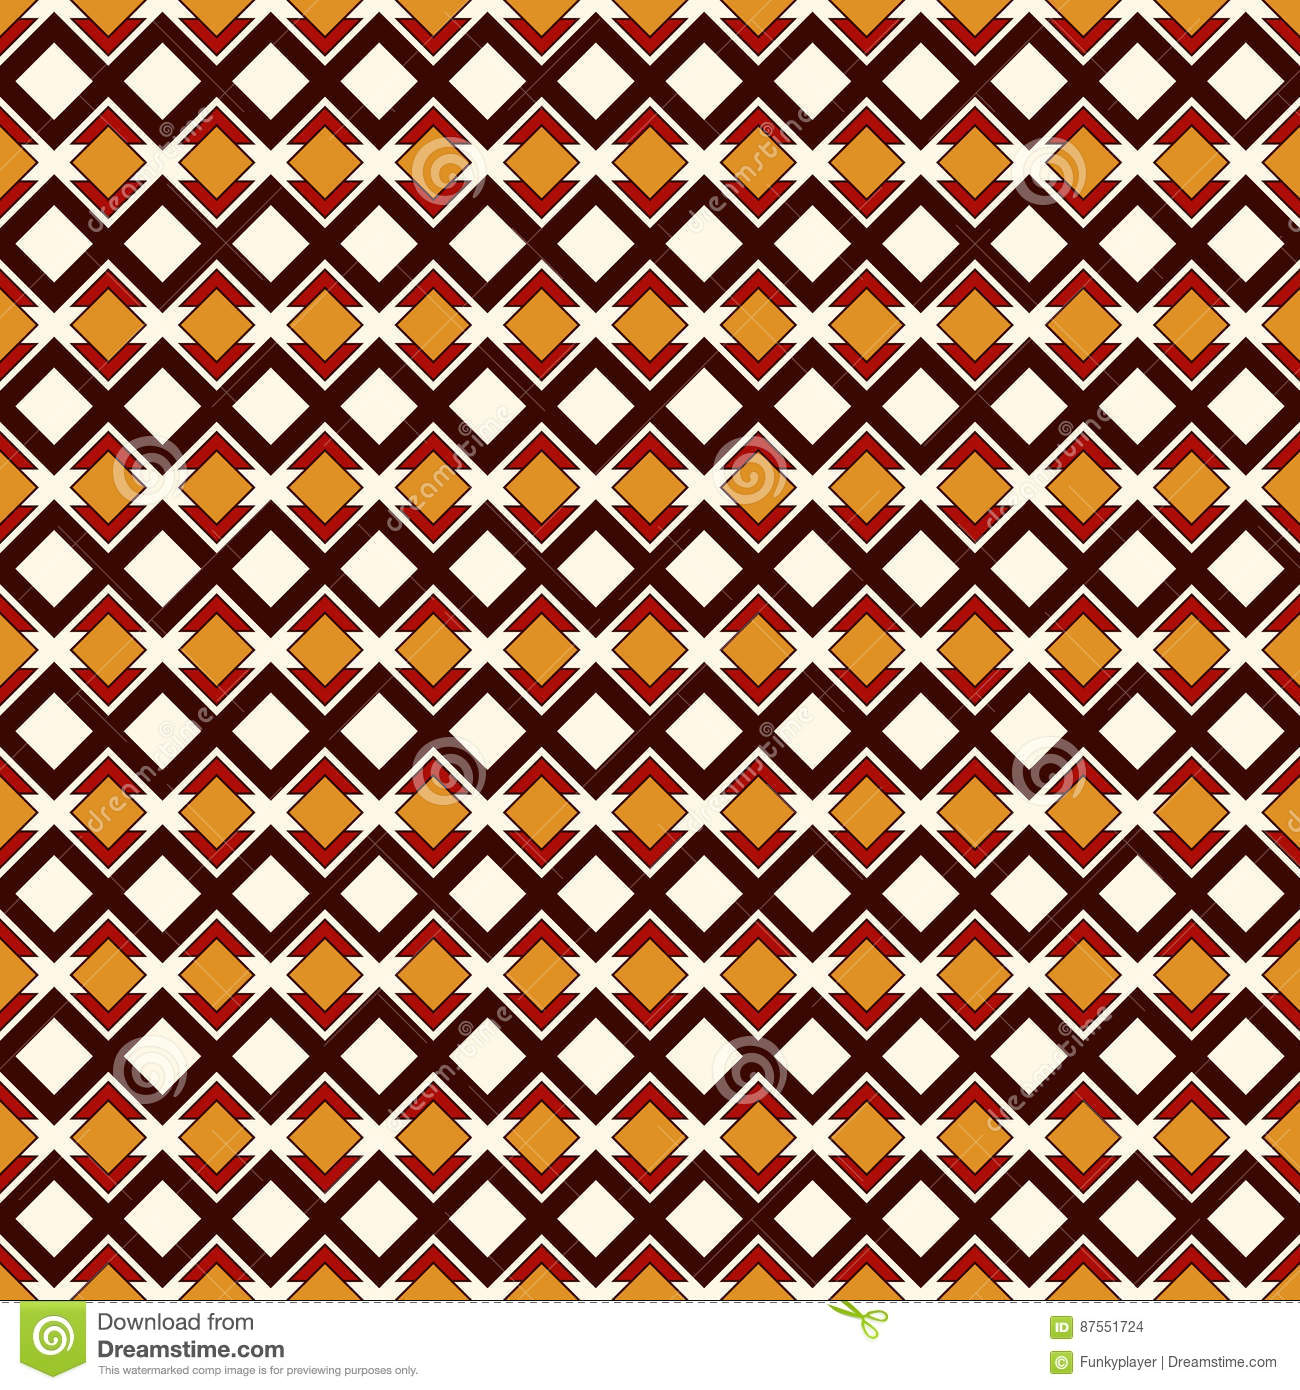 African style seamless pattern with geometric figures. Repeated diamond ornamental abstract background. Ethnic motif.